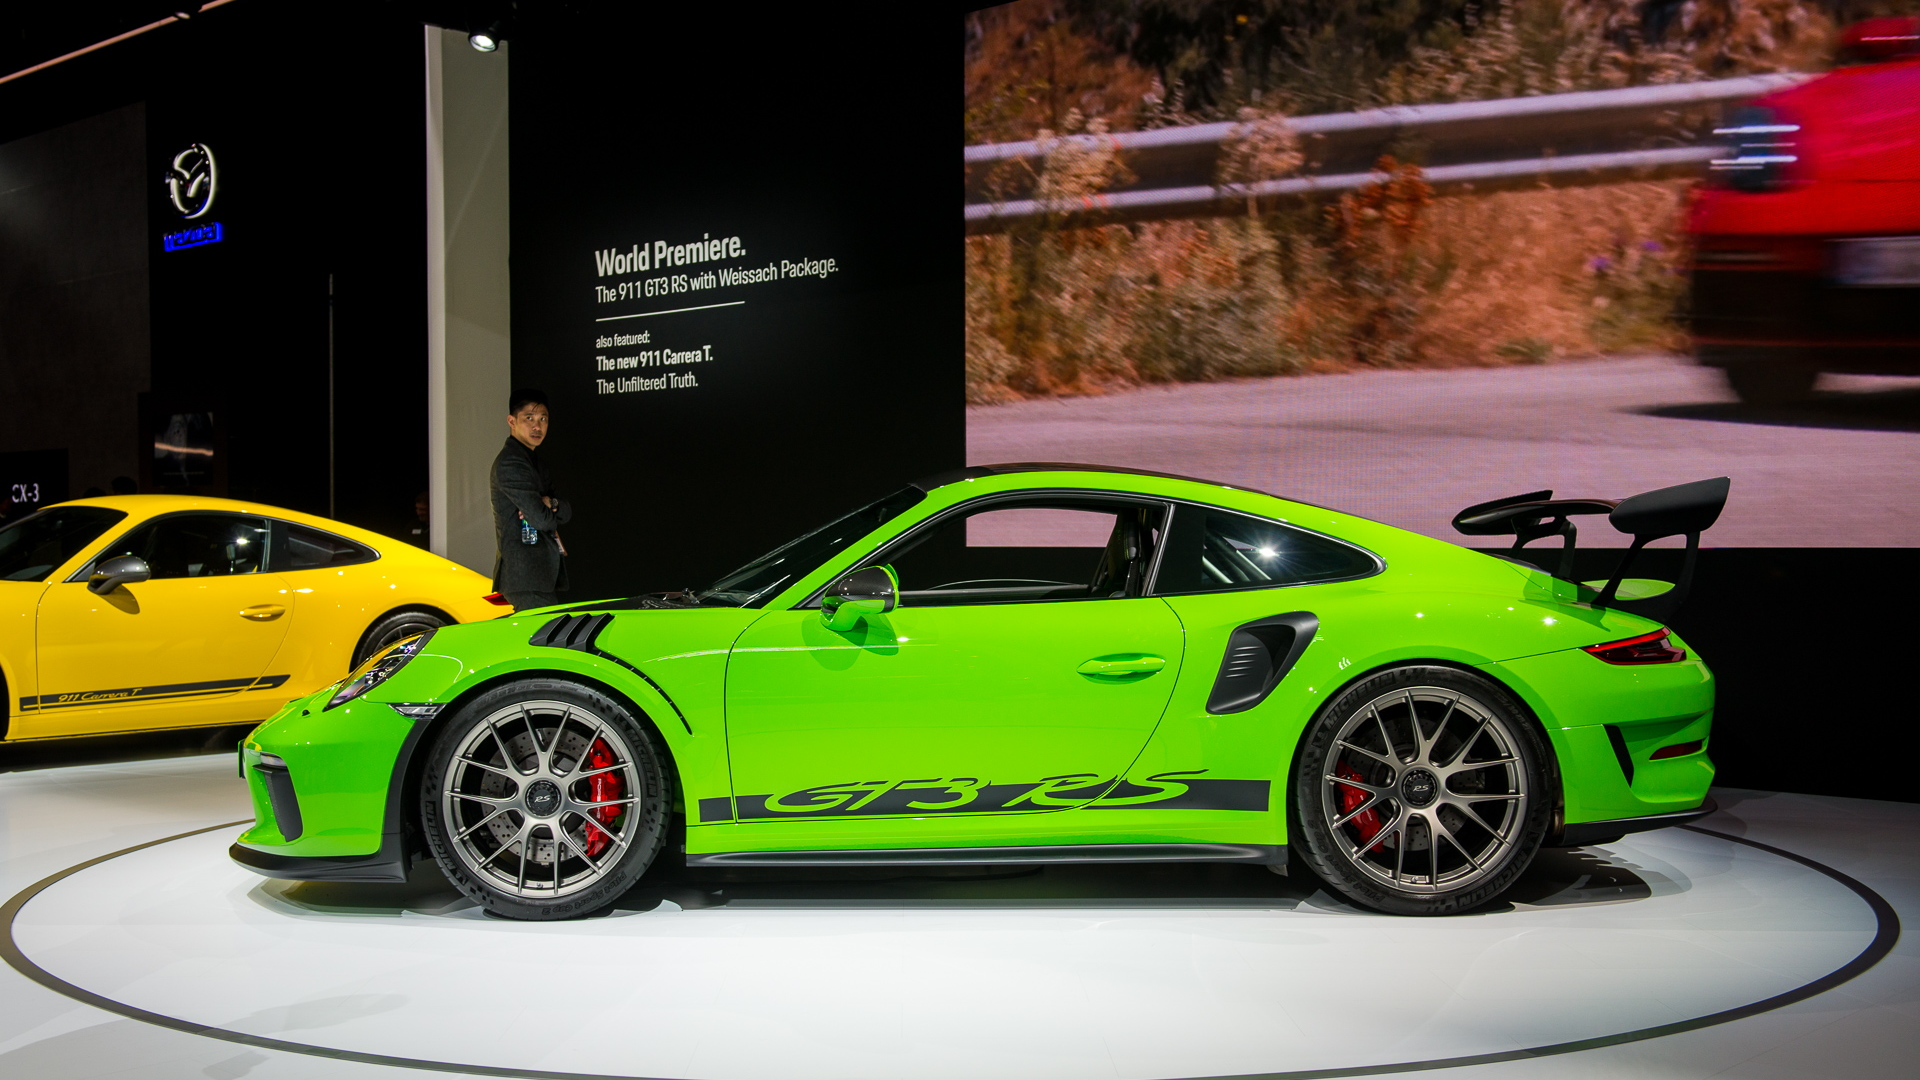 2019 Porsche 911 GT3 RS Weissach package, 2018 New York auto show